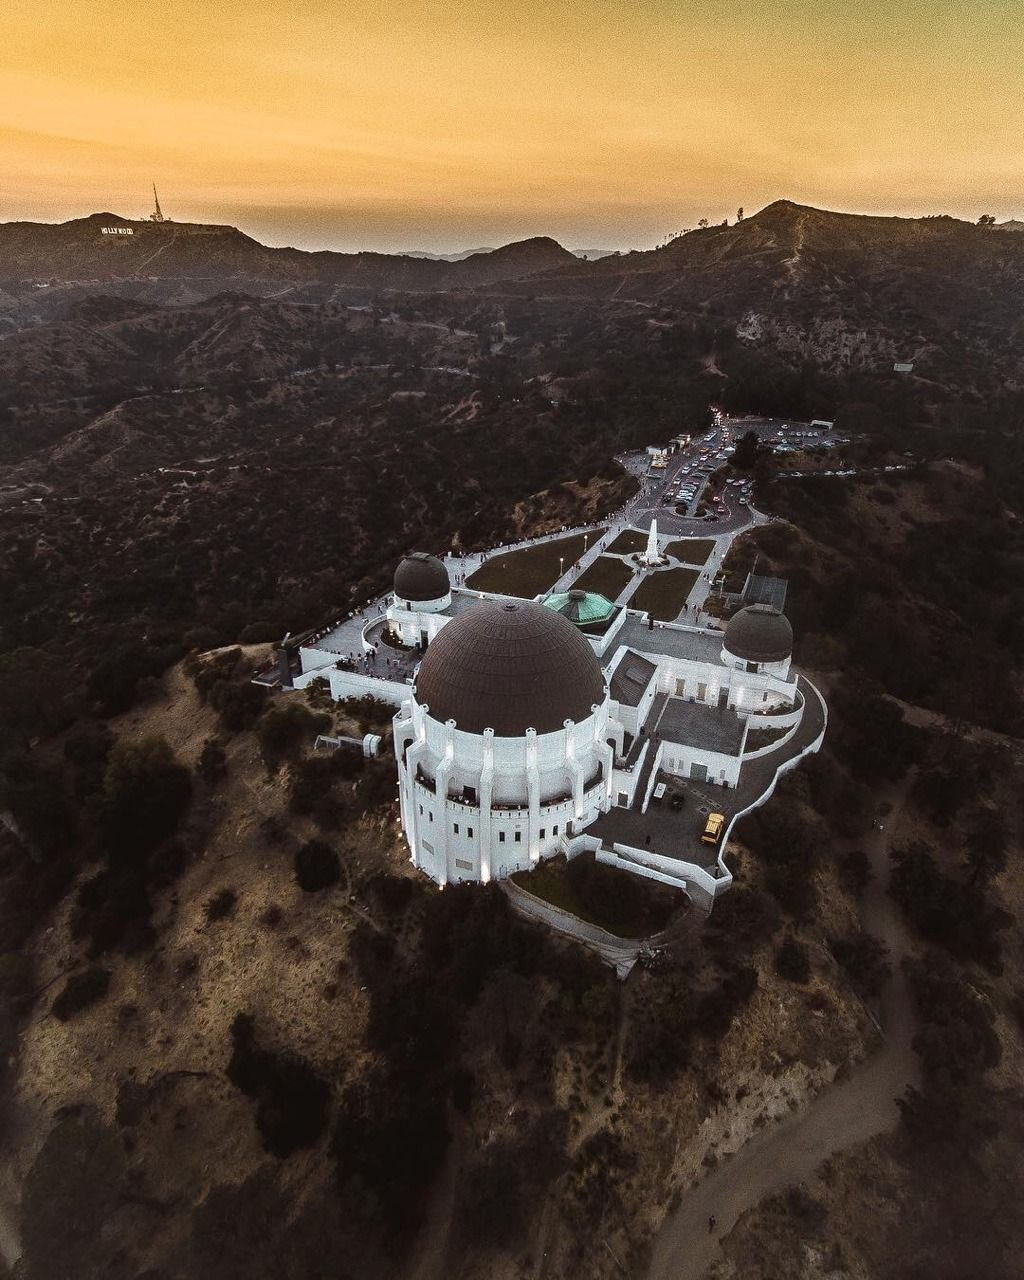 Griffith Observatory Los Angeles California By Jacob Fischer Californiafeelings Com California Cali La Ca Los Angeles Griffith Observatory Aerial Photo